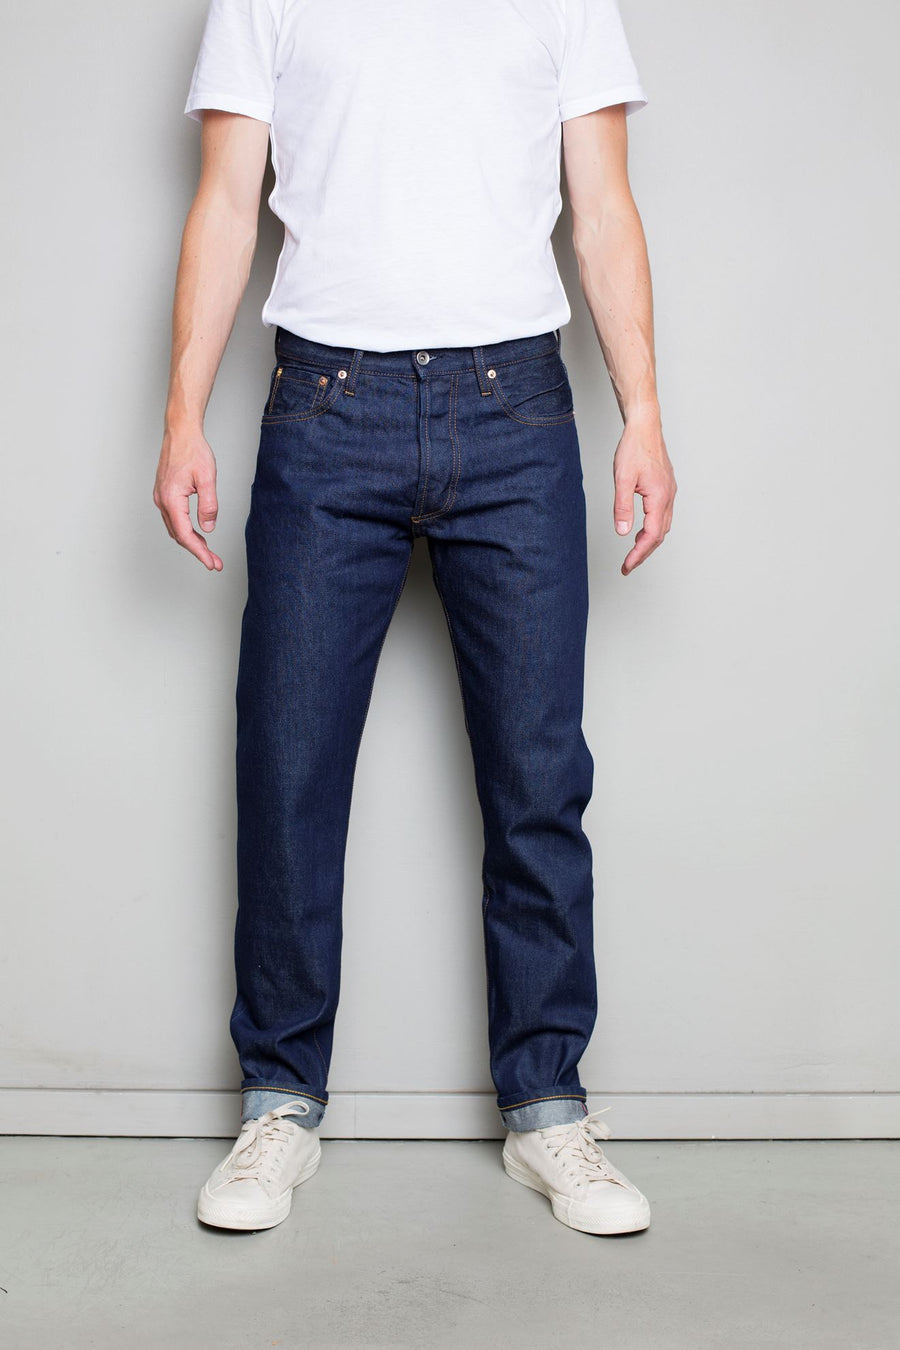 C.O.F. Studio M7 Tapered Selvedge Denim Jean